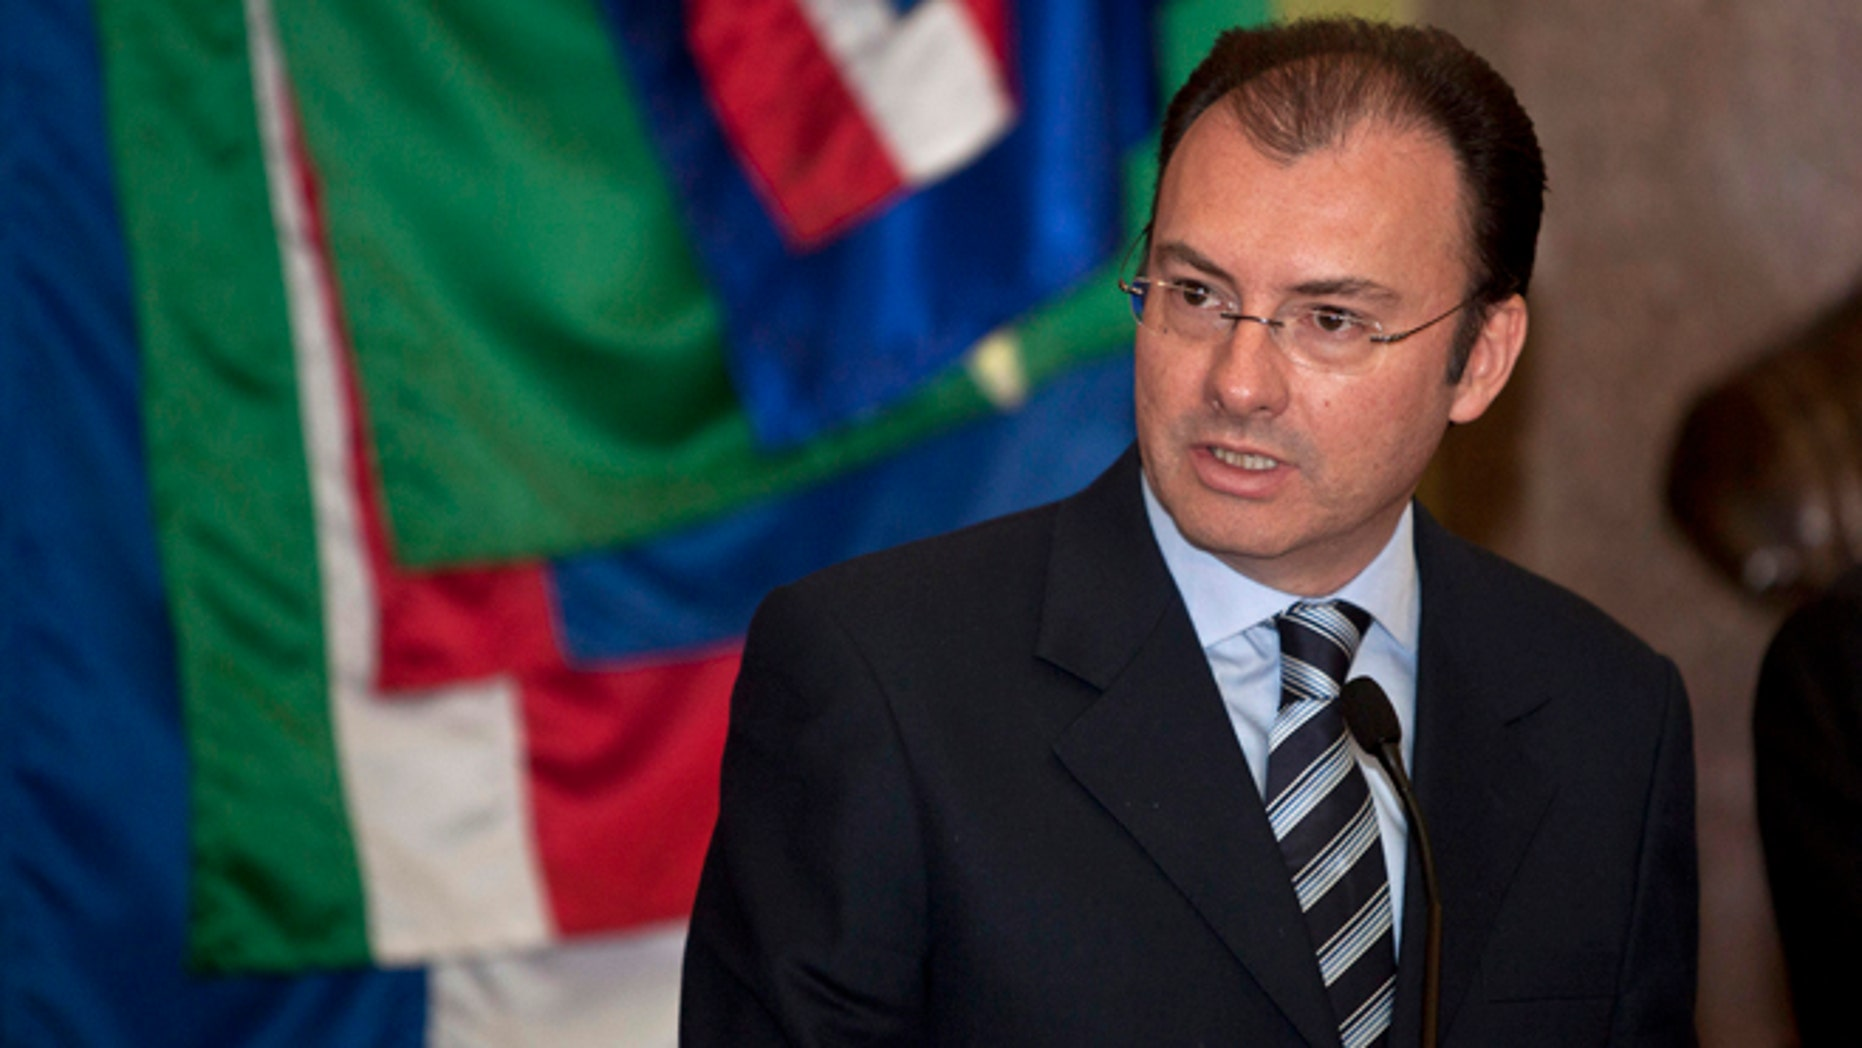 Mexico's former Treasury Minister Luis Videgaray in a Dec. 14, 2012 file photo.